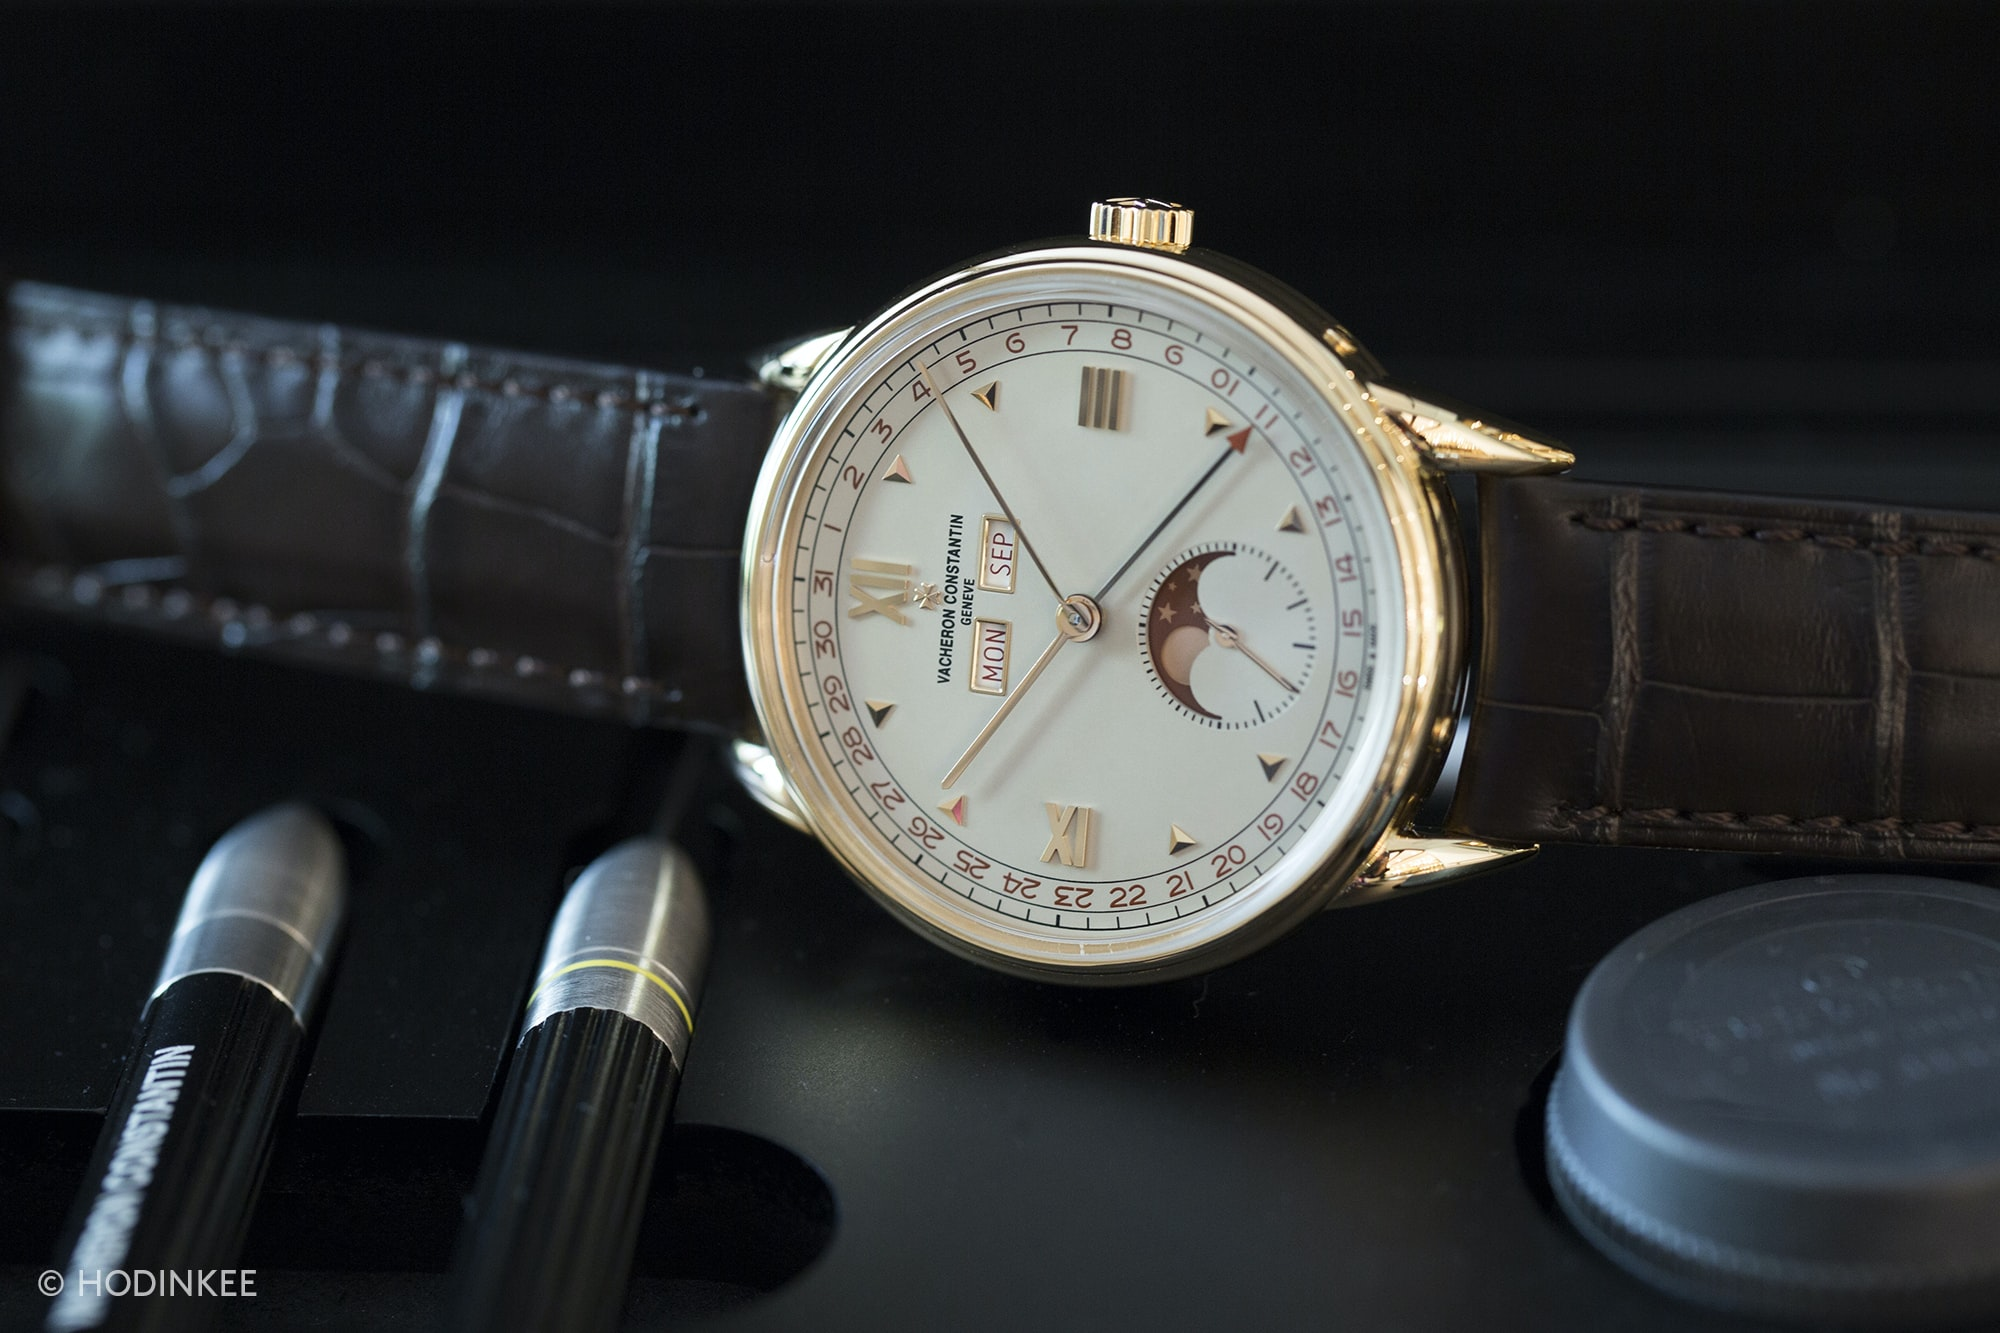 Introducing: The New Vacheron Constantin Historiques: Triple Calendrier 1942 And 1948, And American 1921 Small (Exclusive Live Pics) Introducing: The New Vacheron Constantin Historiques: Triple Calendrier 1942 And 1948, And American 1921 Small (Exclusive Live Pics) 3H0A2937 copy